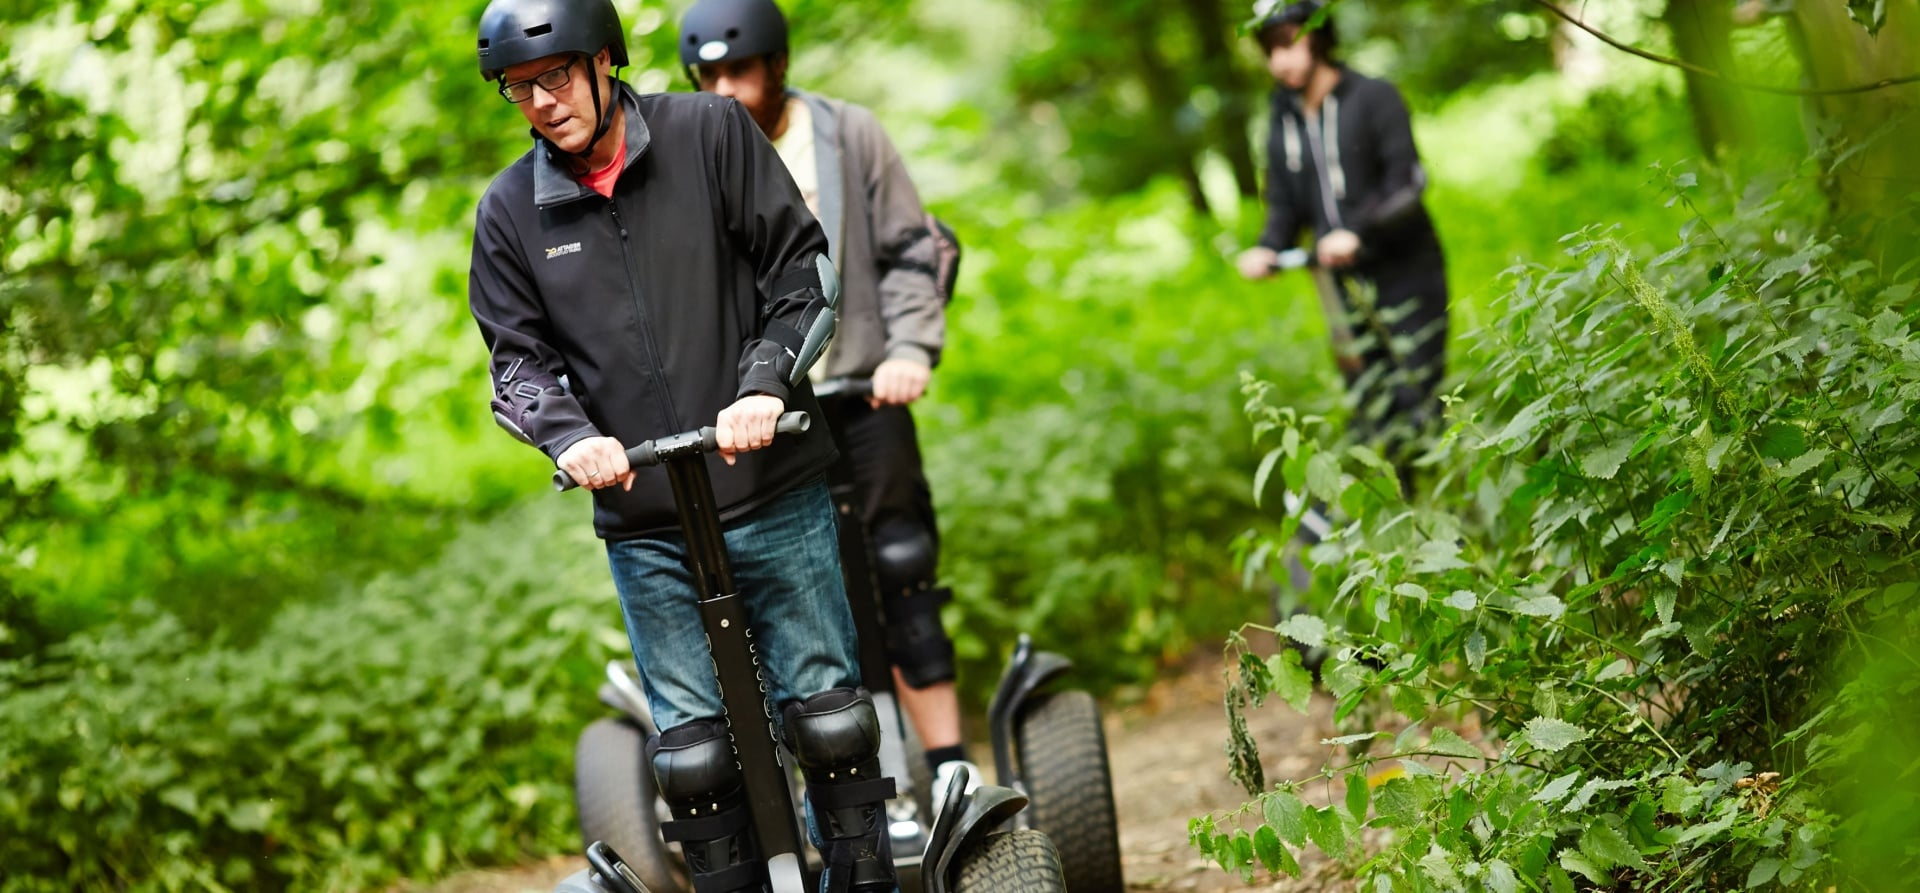 Segway Adventure For 2 Special Offer-2